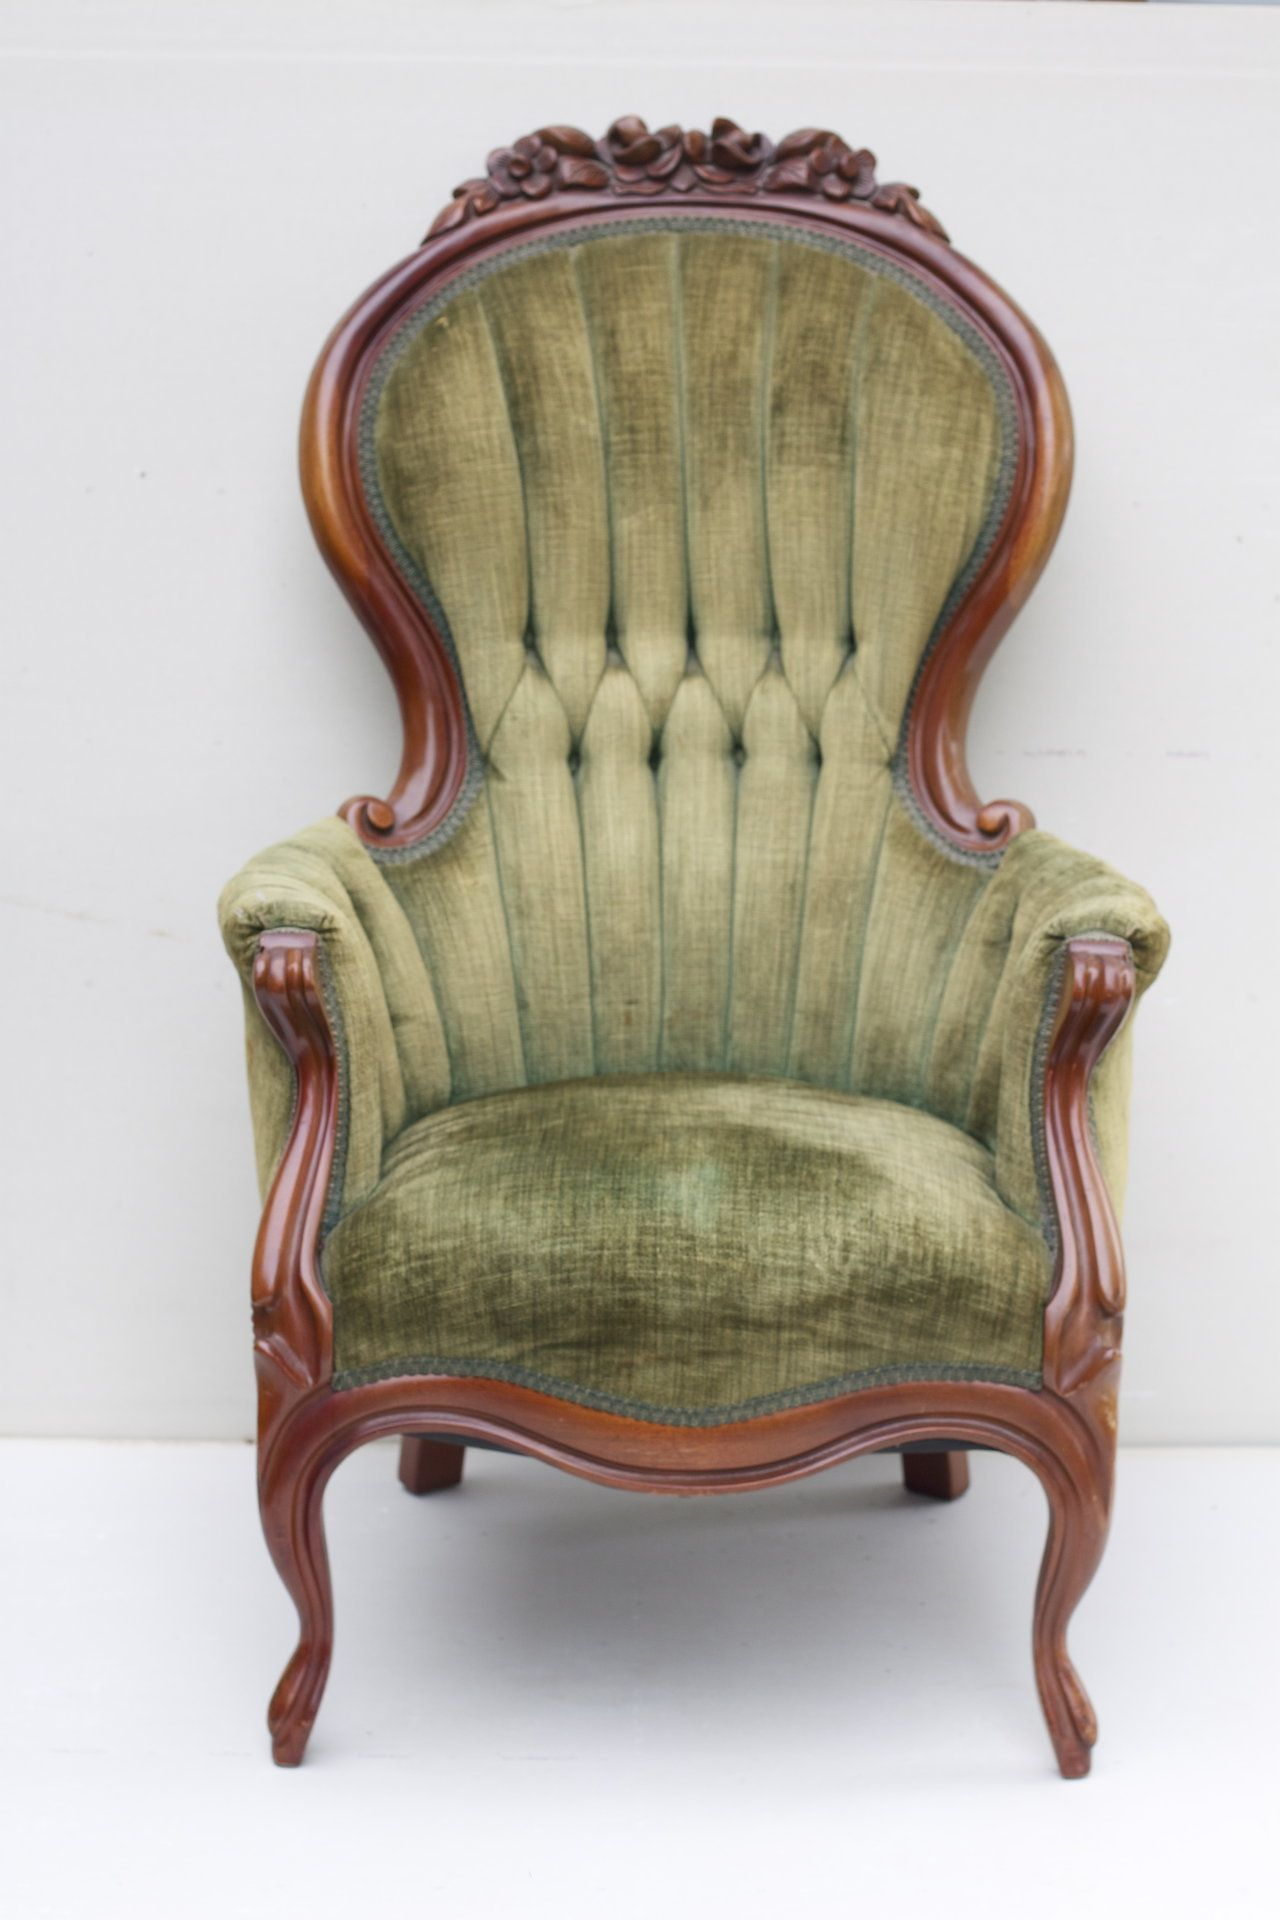 Vintage Chair with tufted sage green chenille upholstery and cherry wood  frame. Description from adorefolklore - Vintage Chair With Tufted Sage Green Chenille Upholstery And